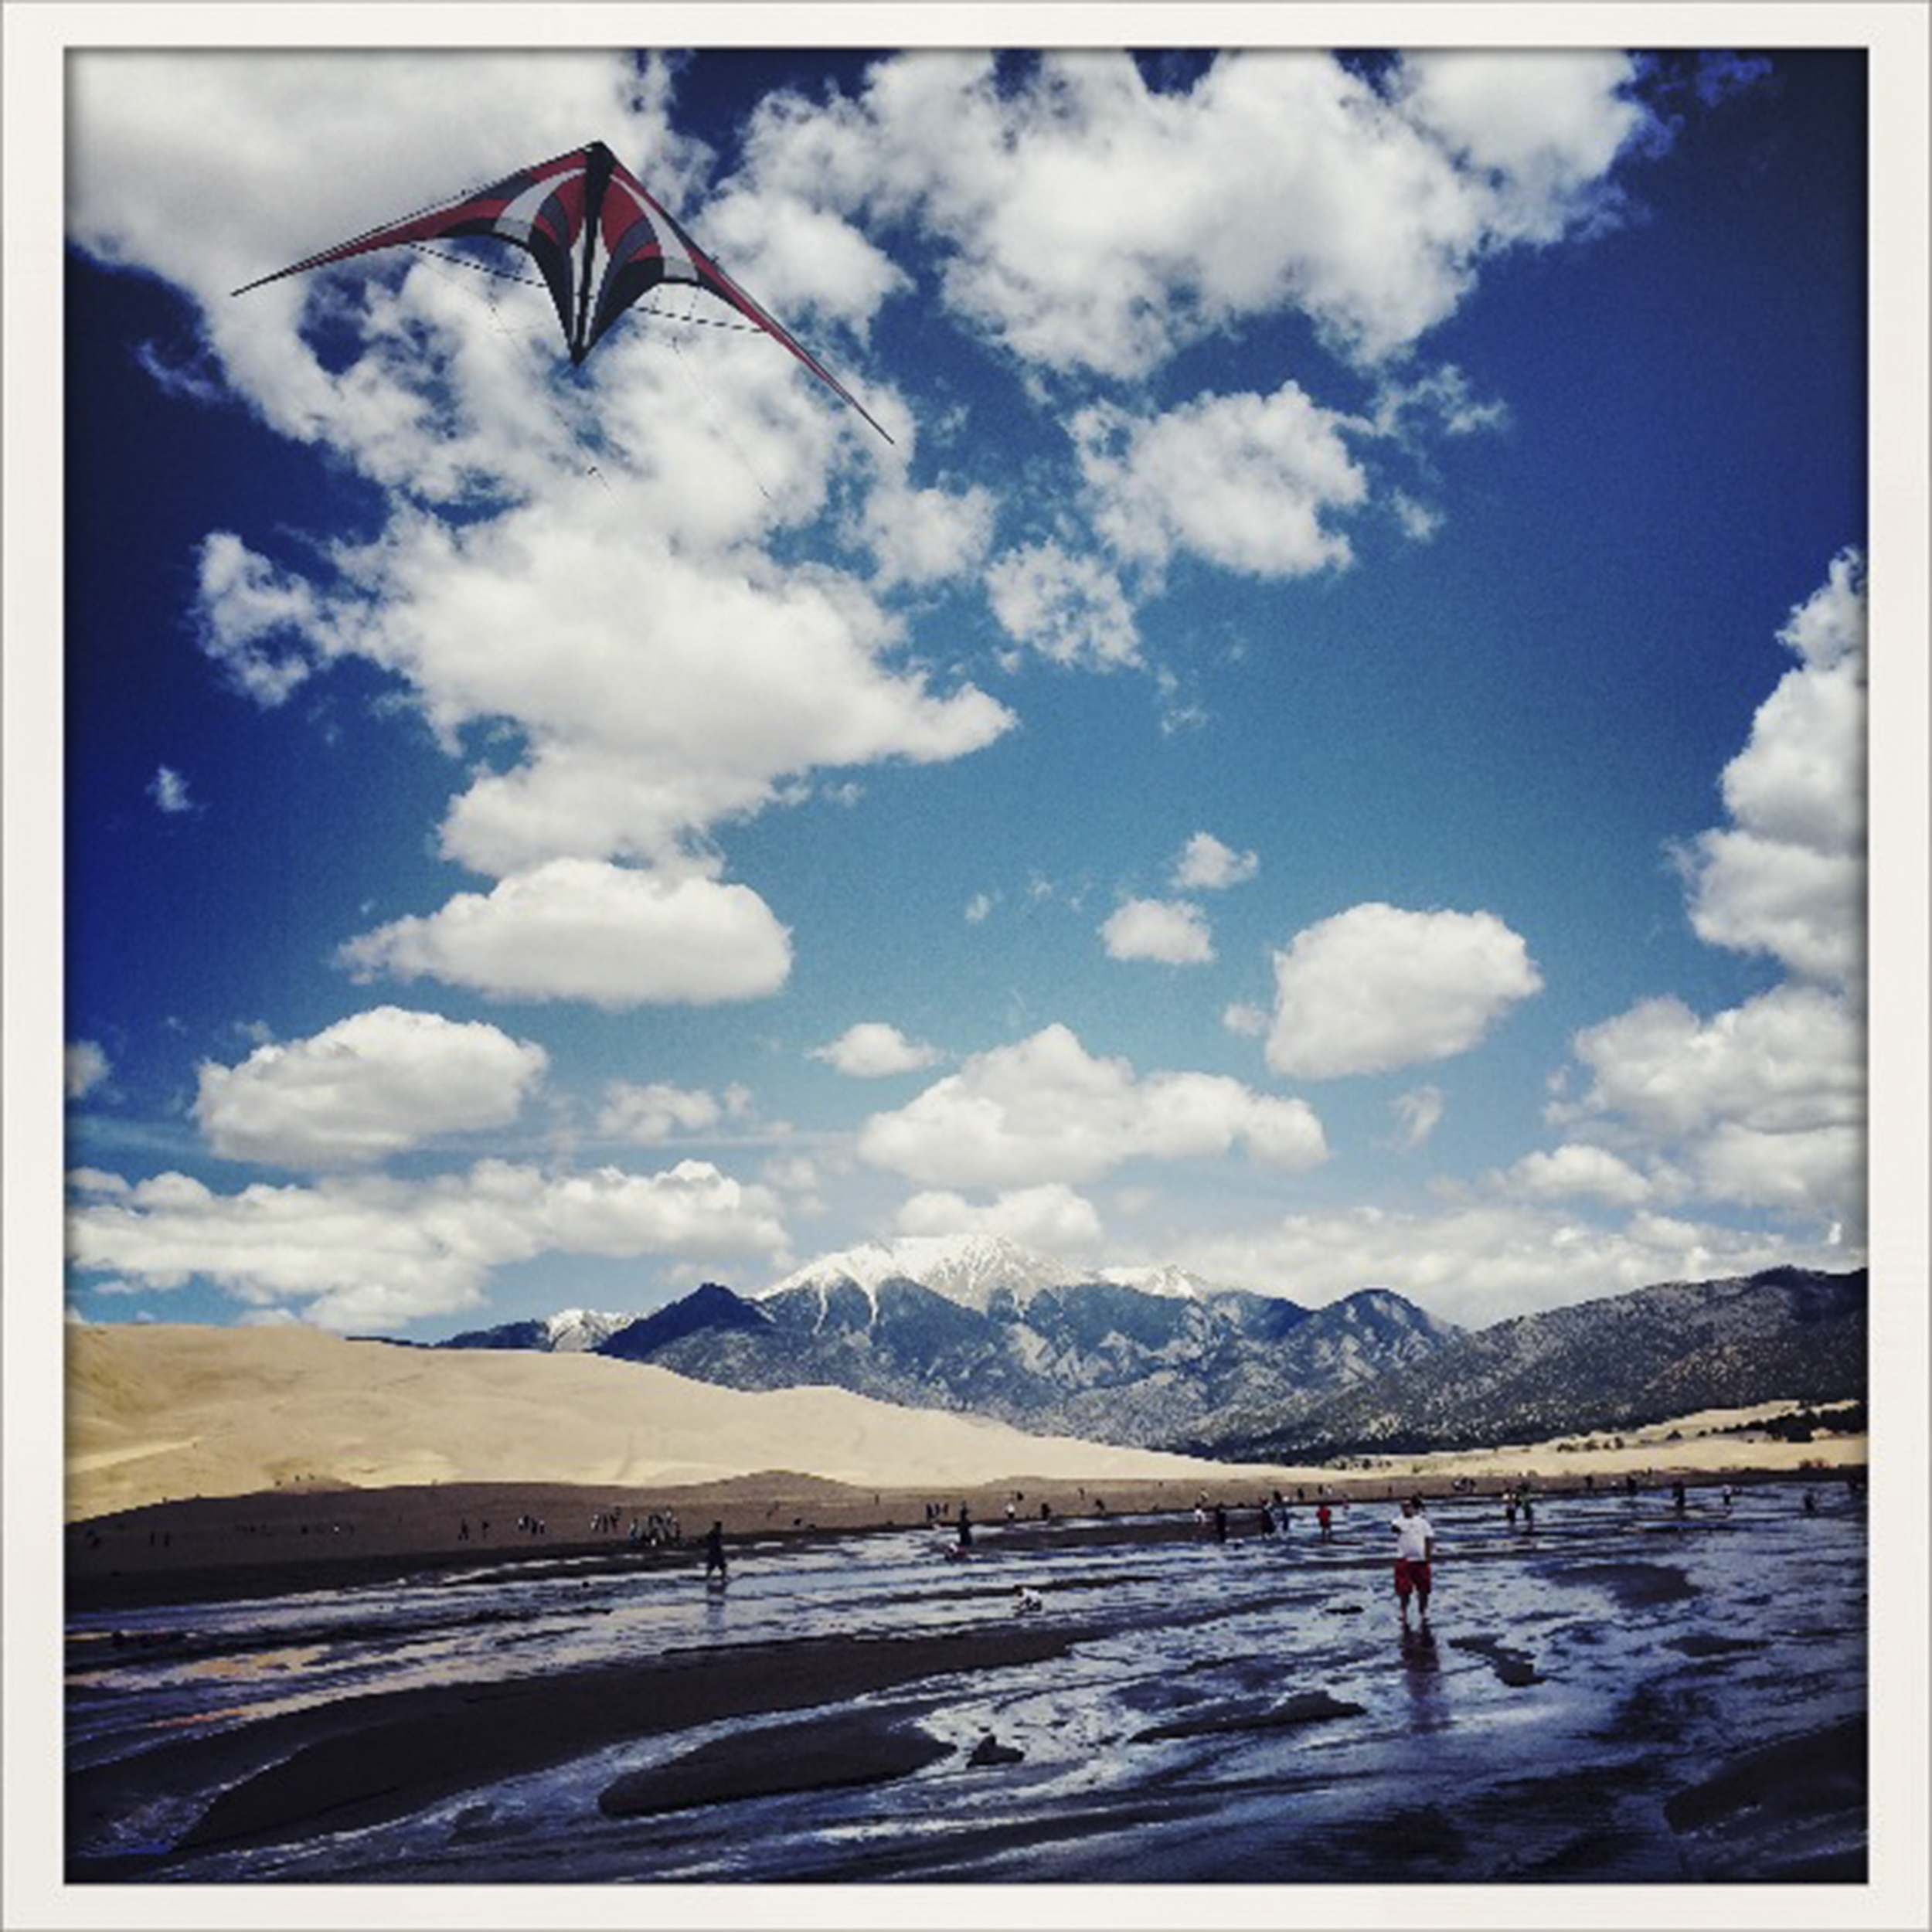 A man flys a kite at the Great Sand Dunes National Park in Mosca, Colorado on Monday May 26, 2014.